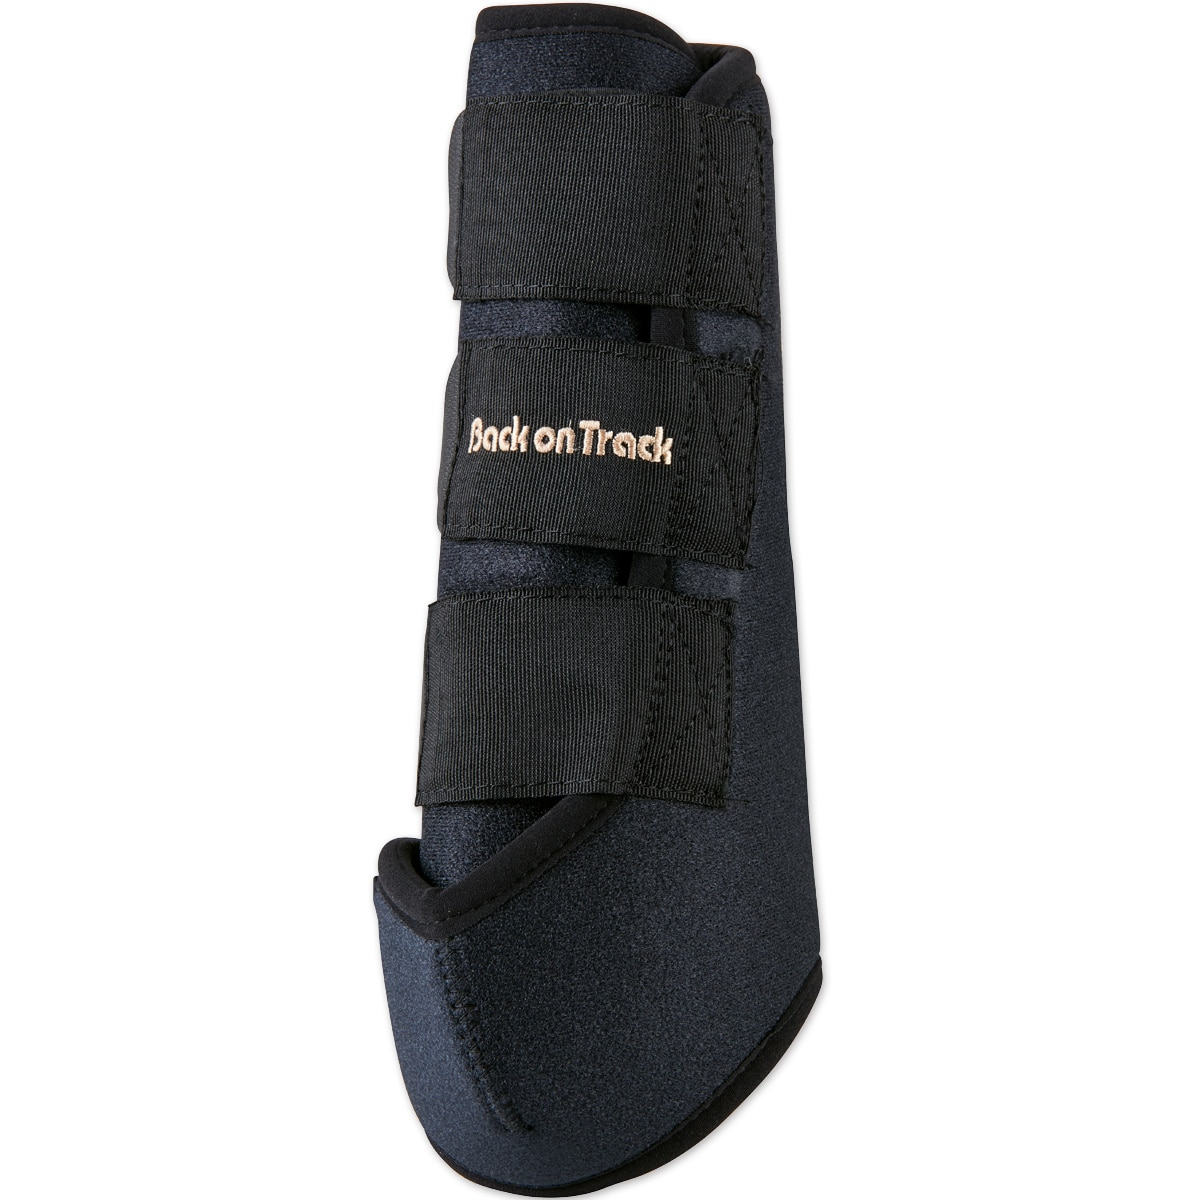 Back on Track Neck Cover with hook-and-loop fasteners